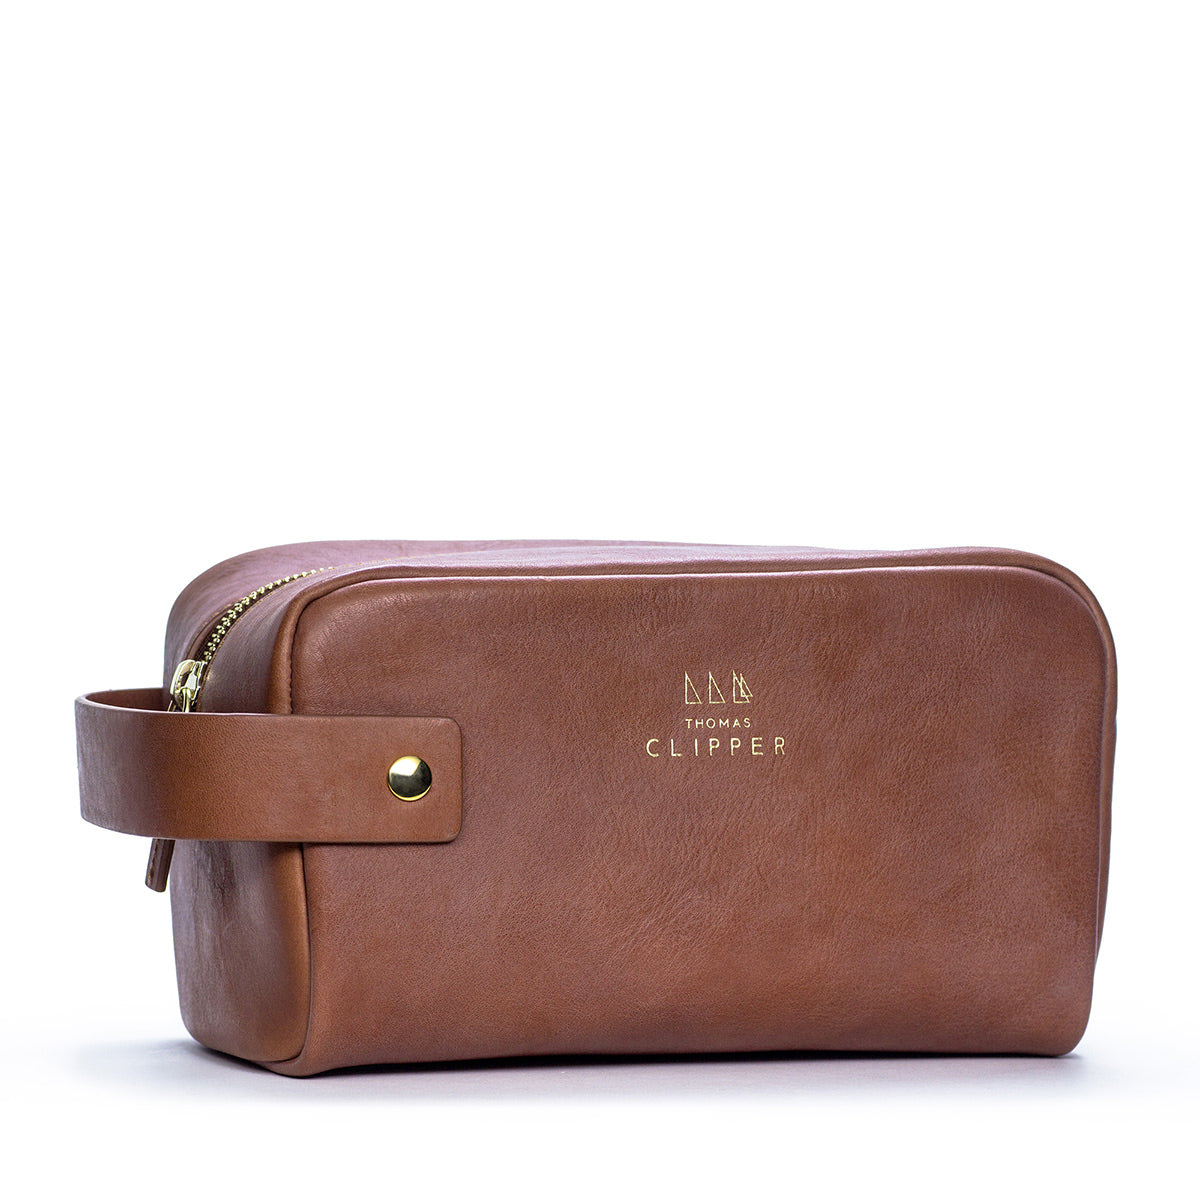 08f98f3c5c59 Country Wash Bag | Handmade In Italy | Thomas Clipper